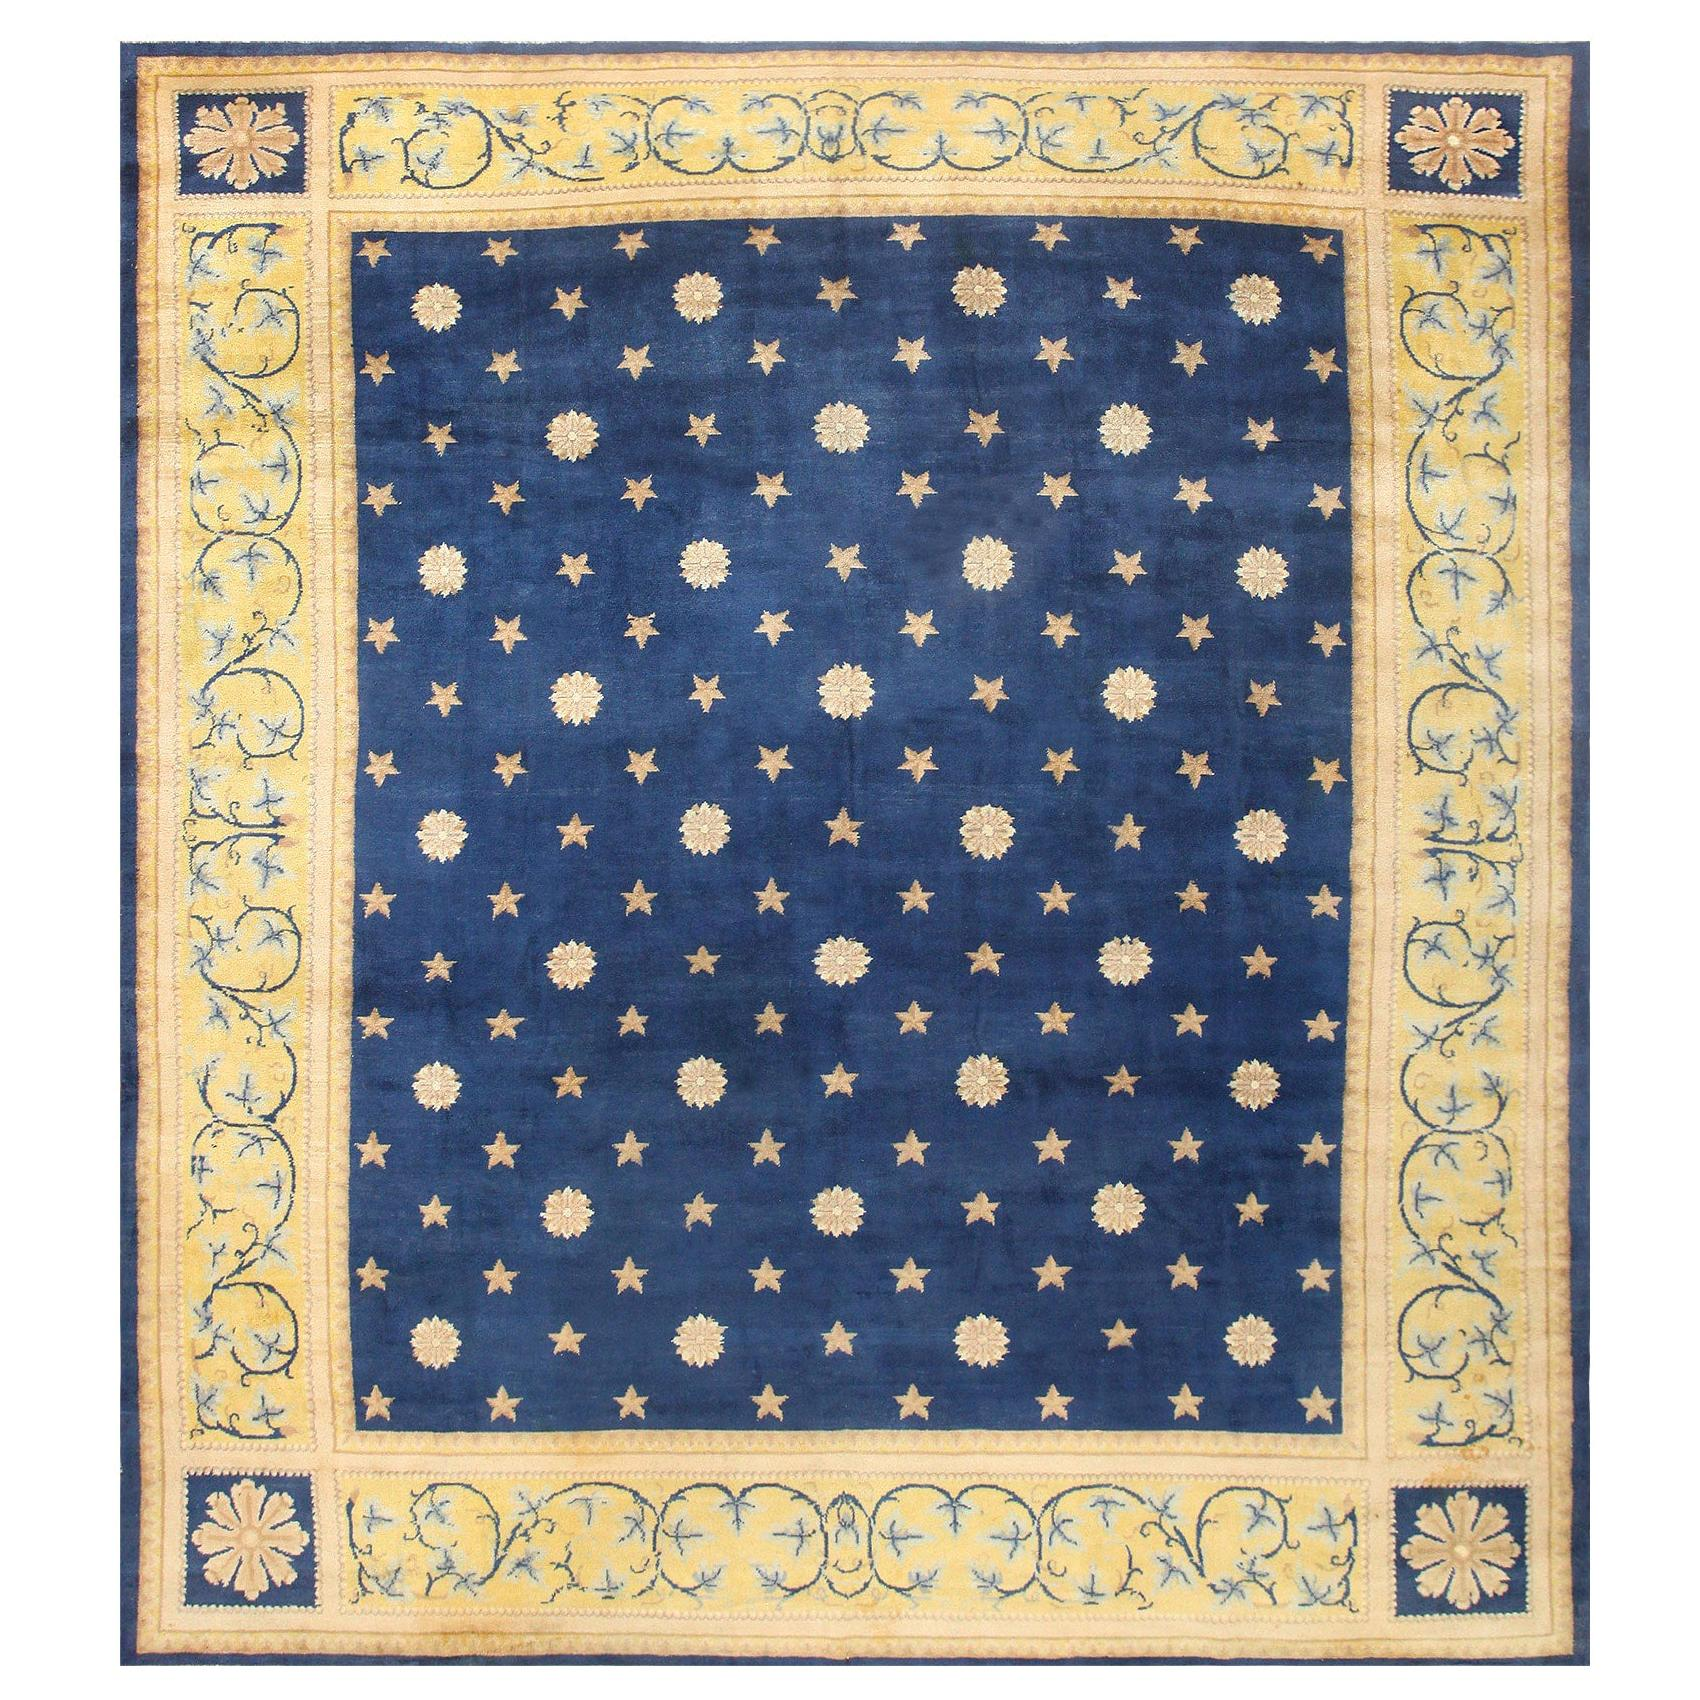 Antique Spanish Carpet with Celestial Design. Size: 11 ft 5 in x 12 ft 9 in